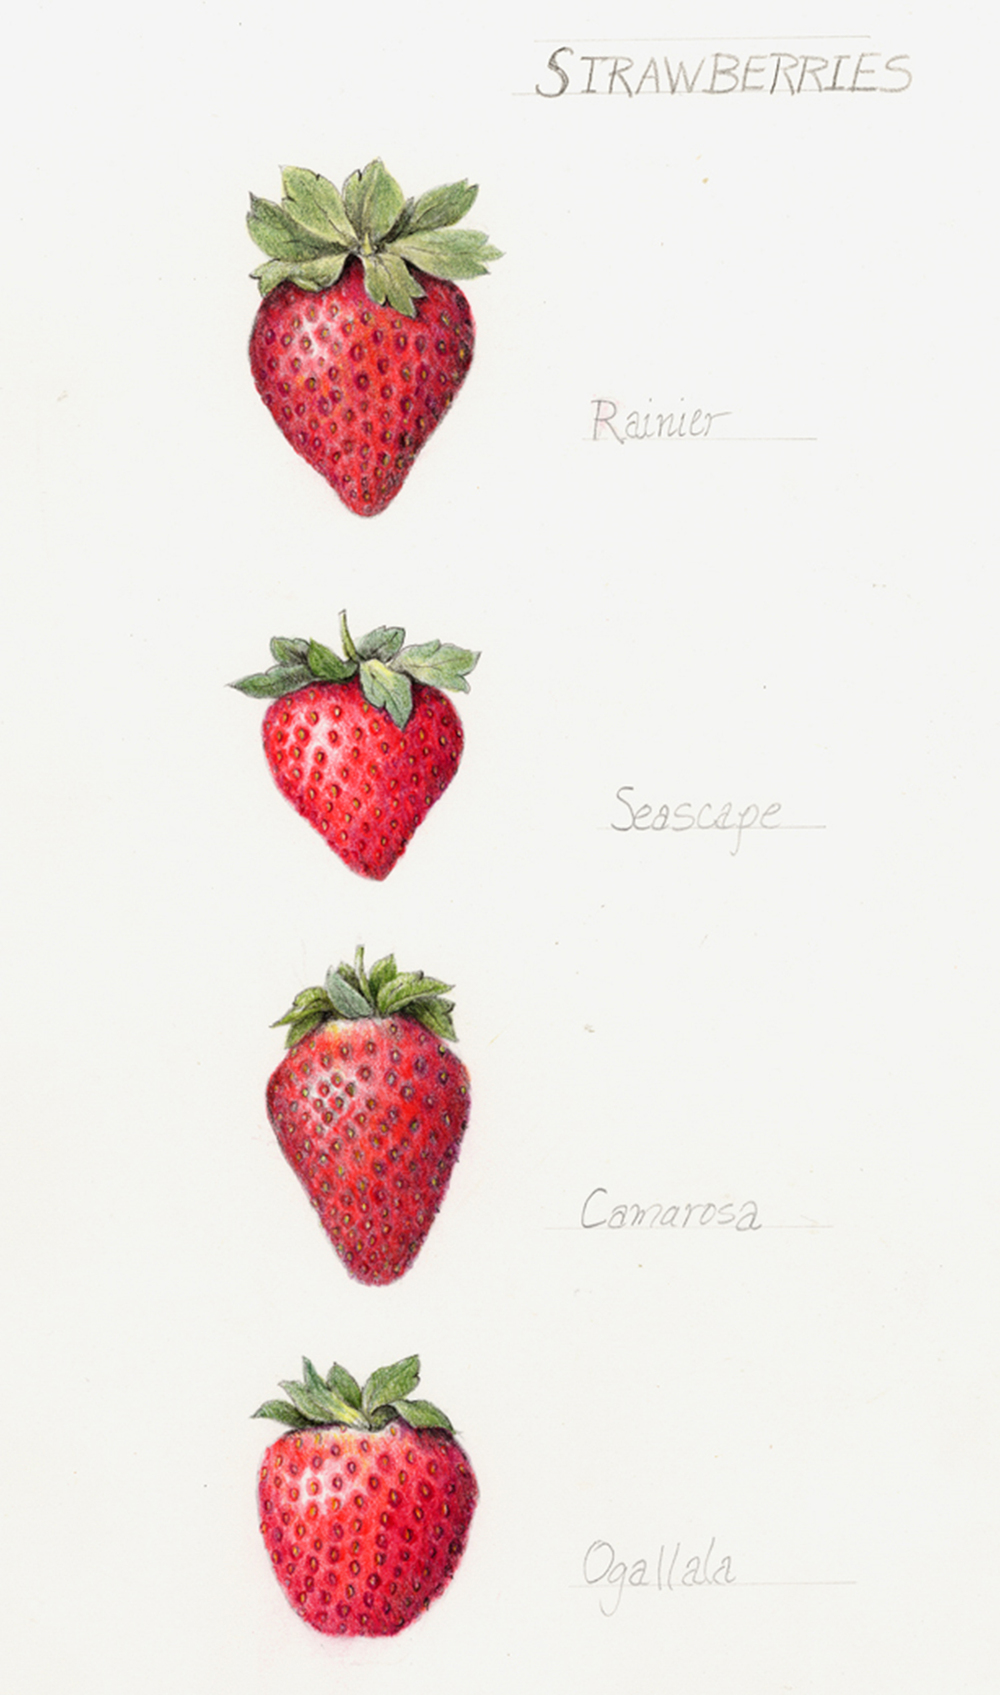 SUNSET MAGAZINE January 2013 Illustrations for an article about growing your own strawberries. Read the article online.